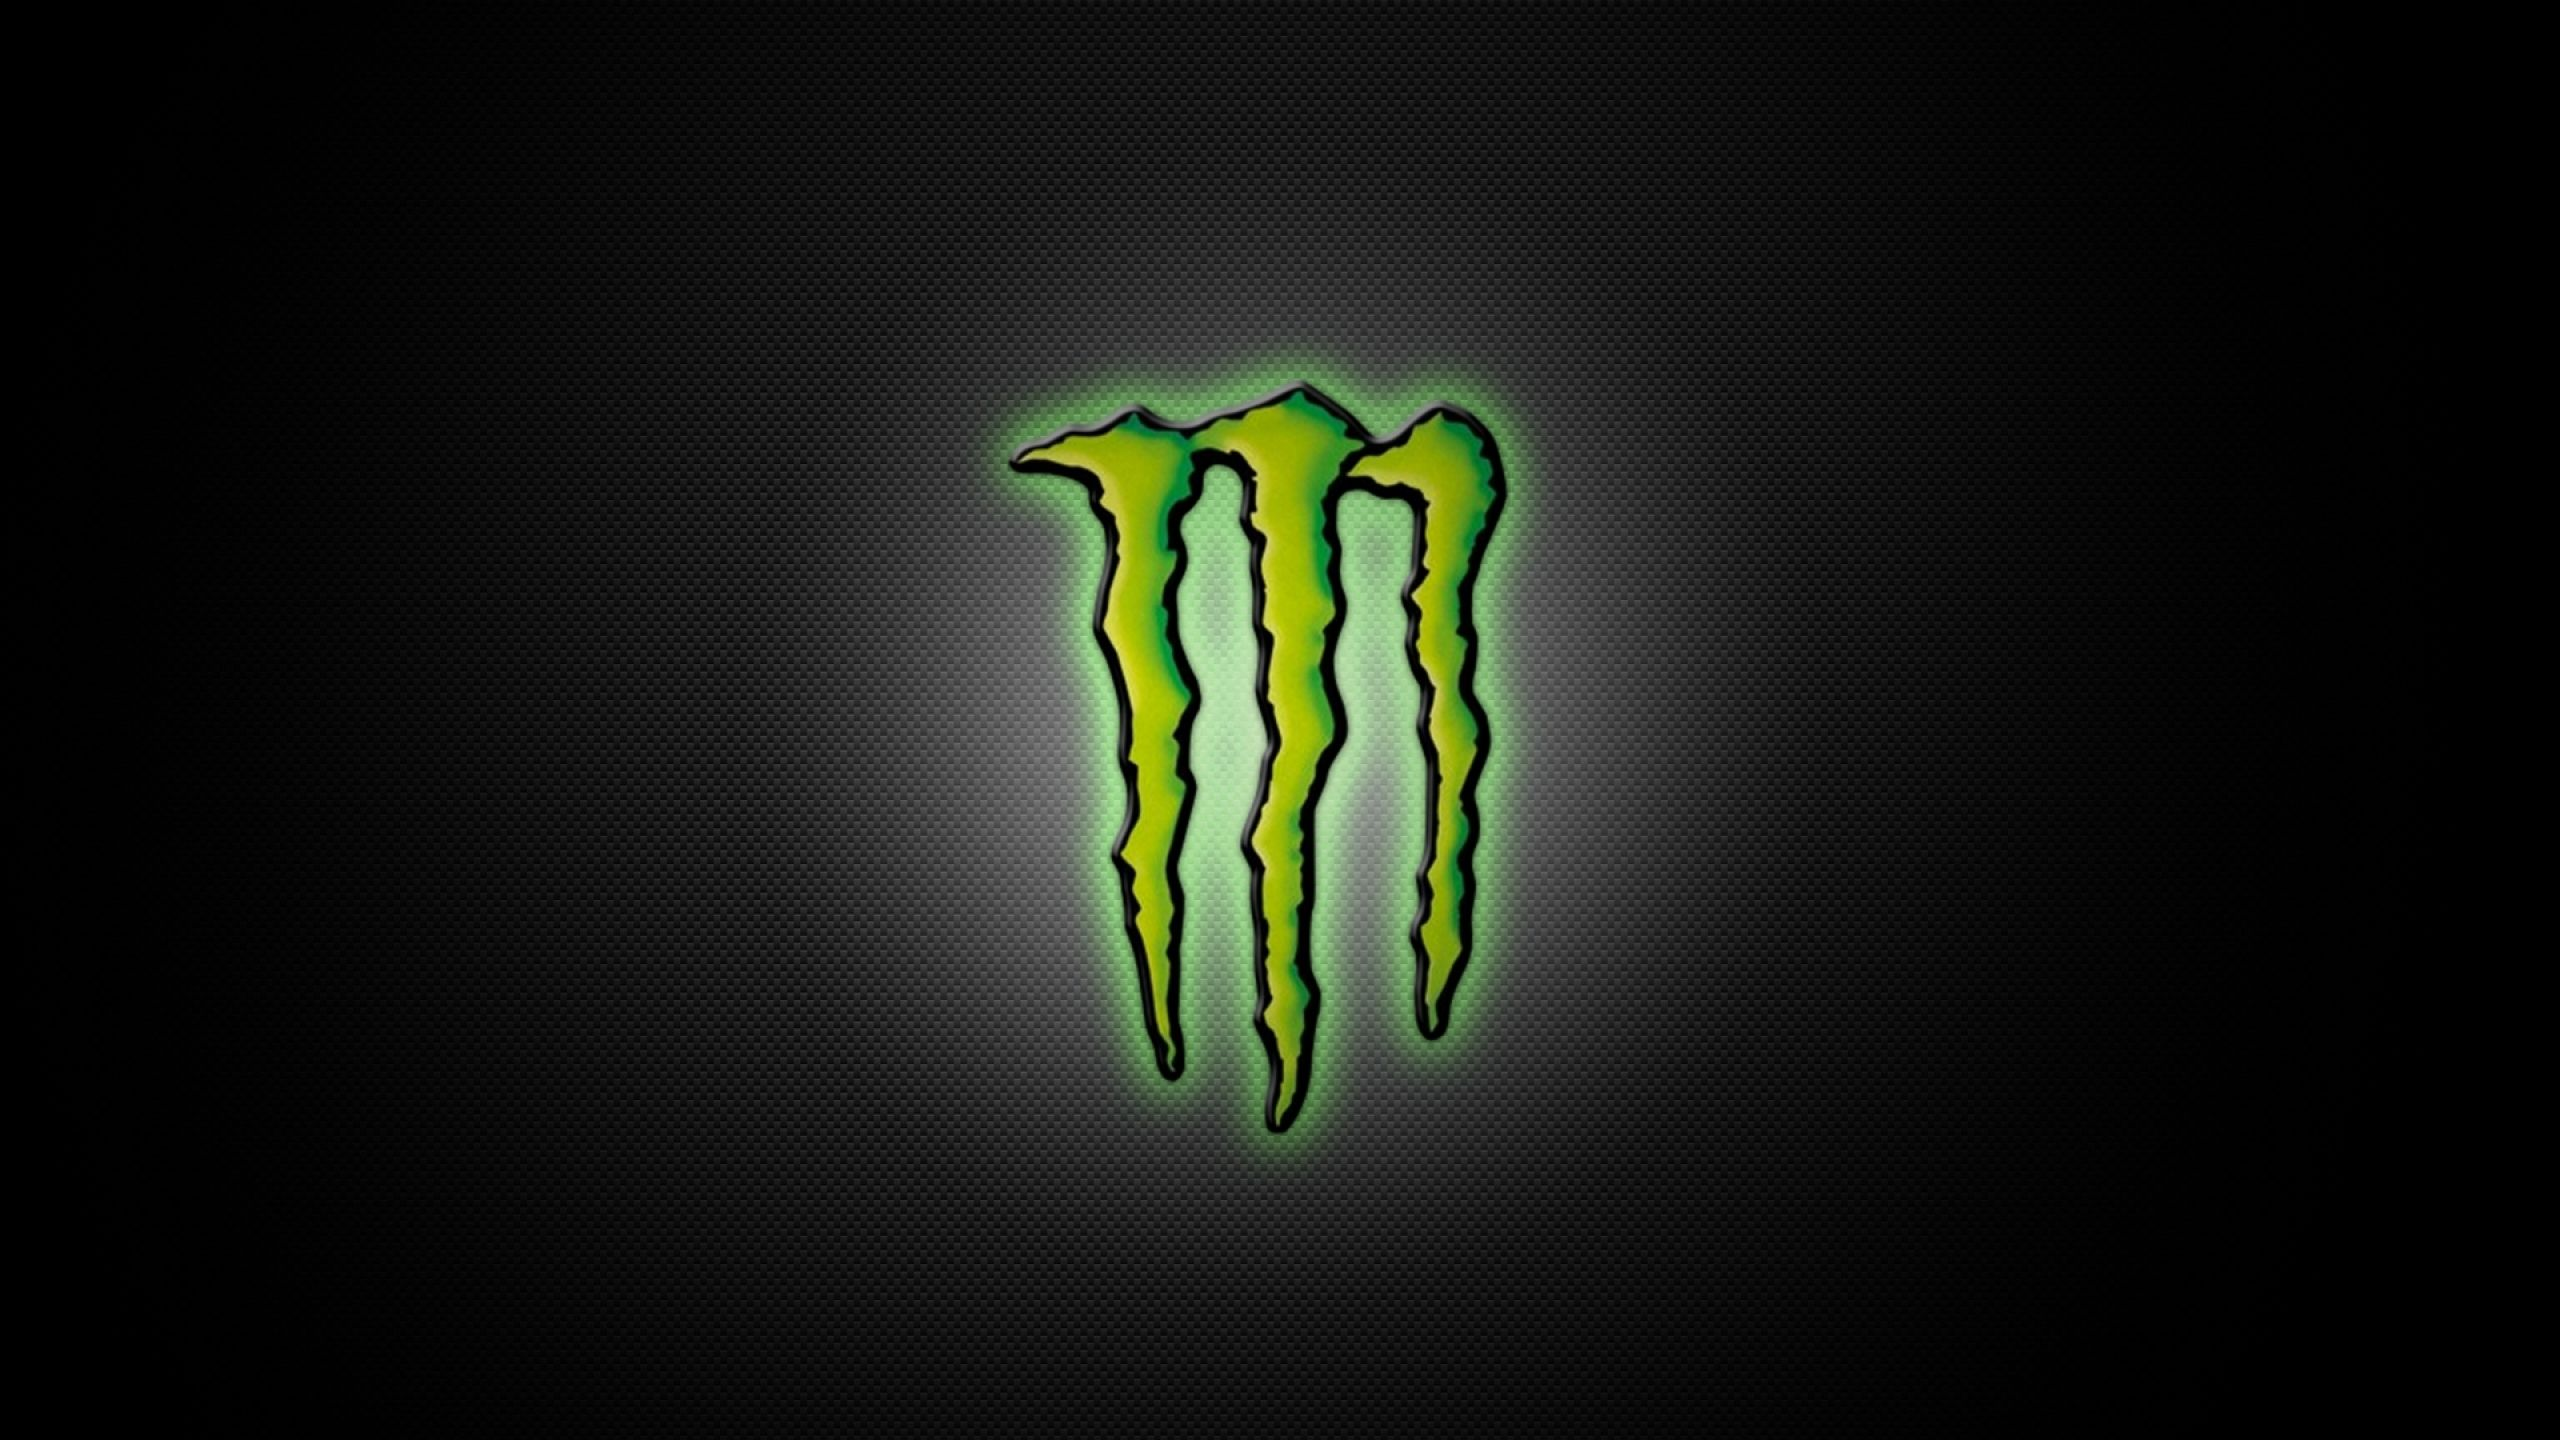 What Color Is The Green Monster Energy Drink